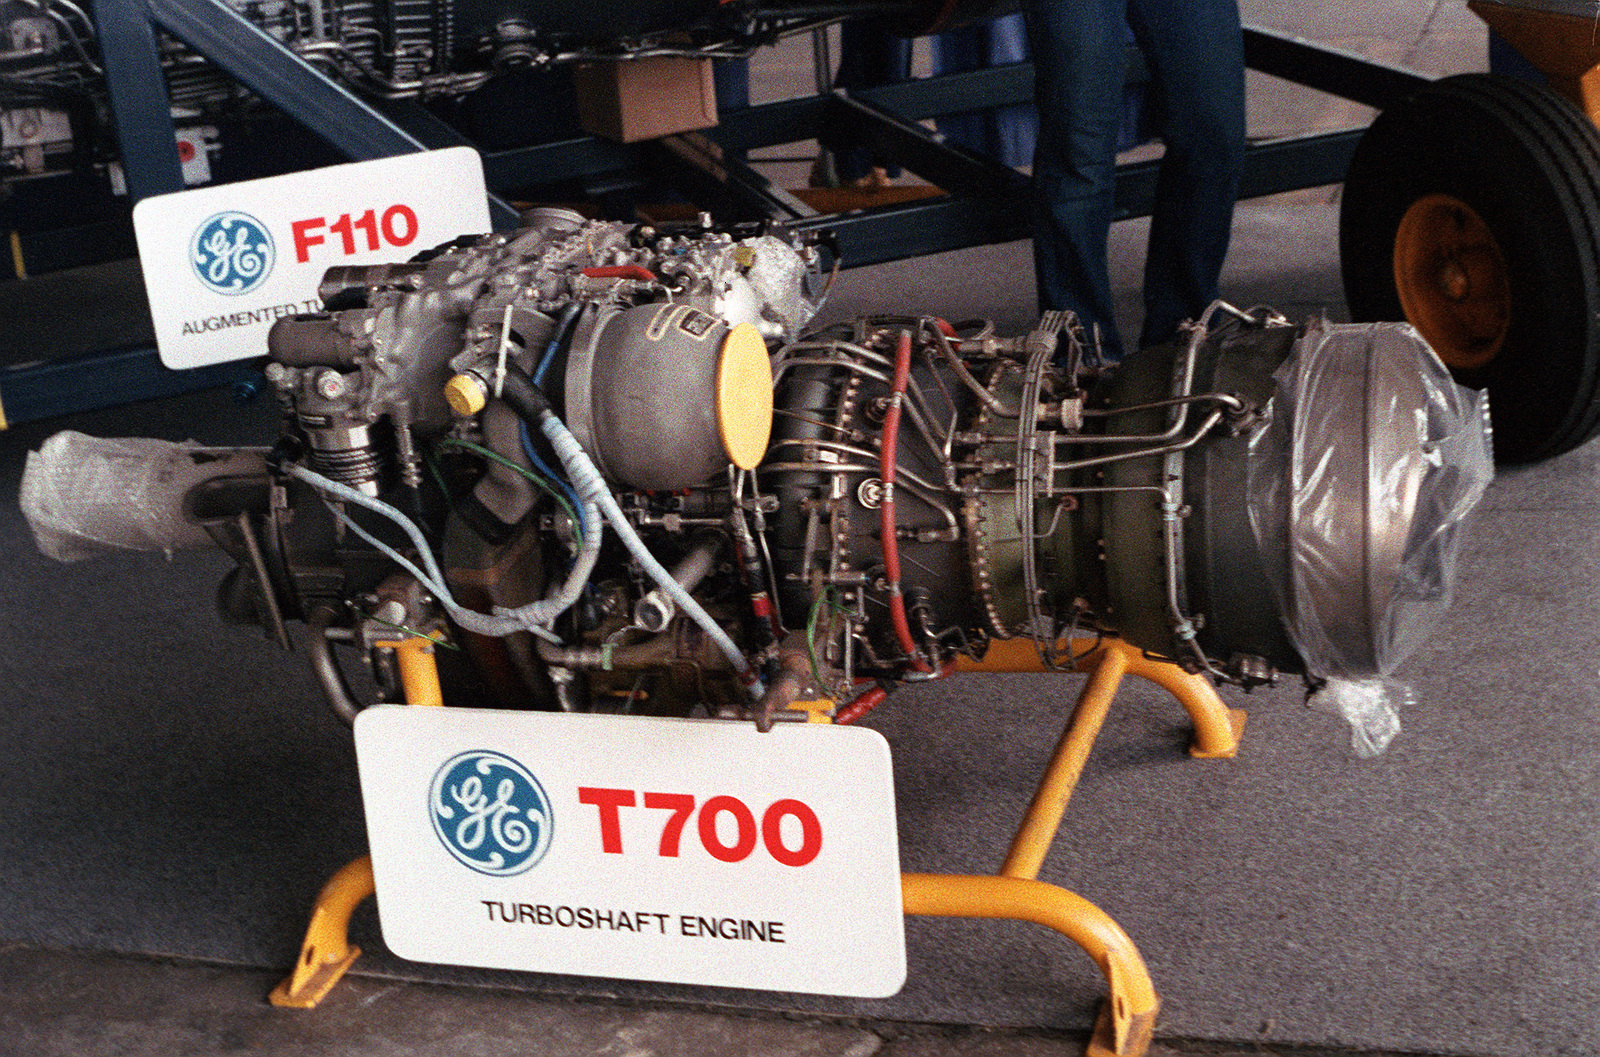 hight resolution of a view of the general electric t700 turboshaft engine on display during the patuxent river air